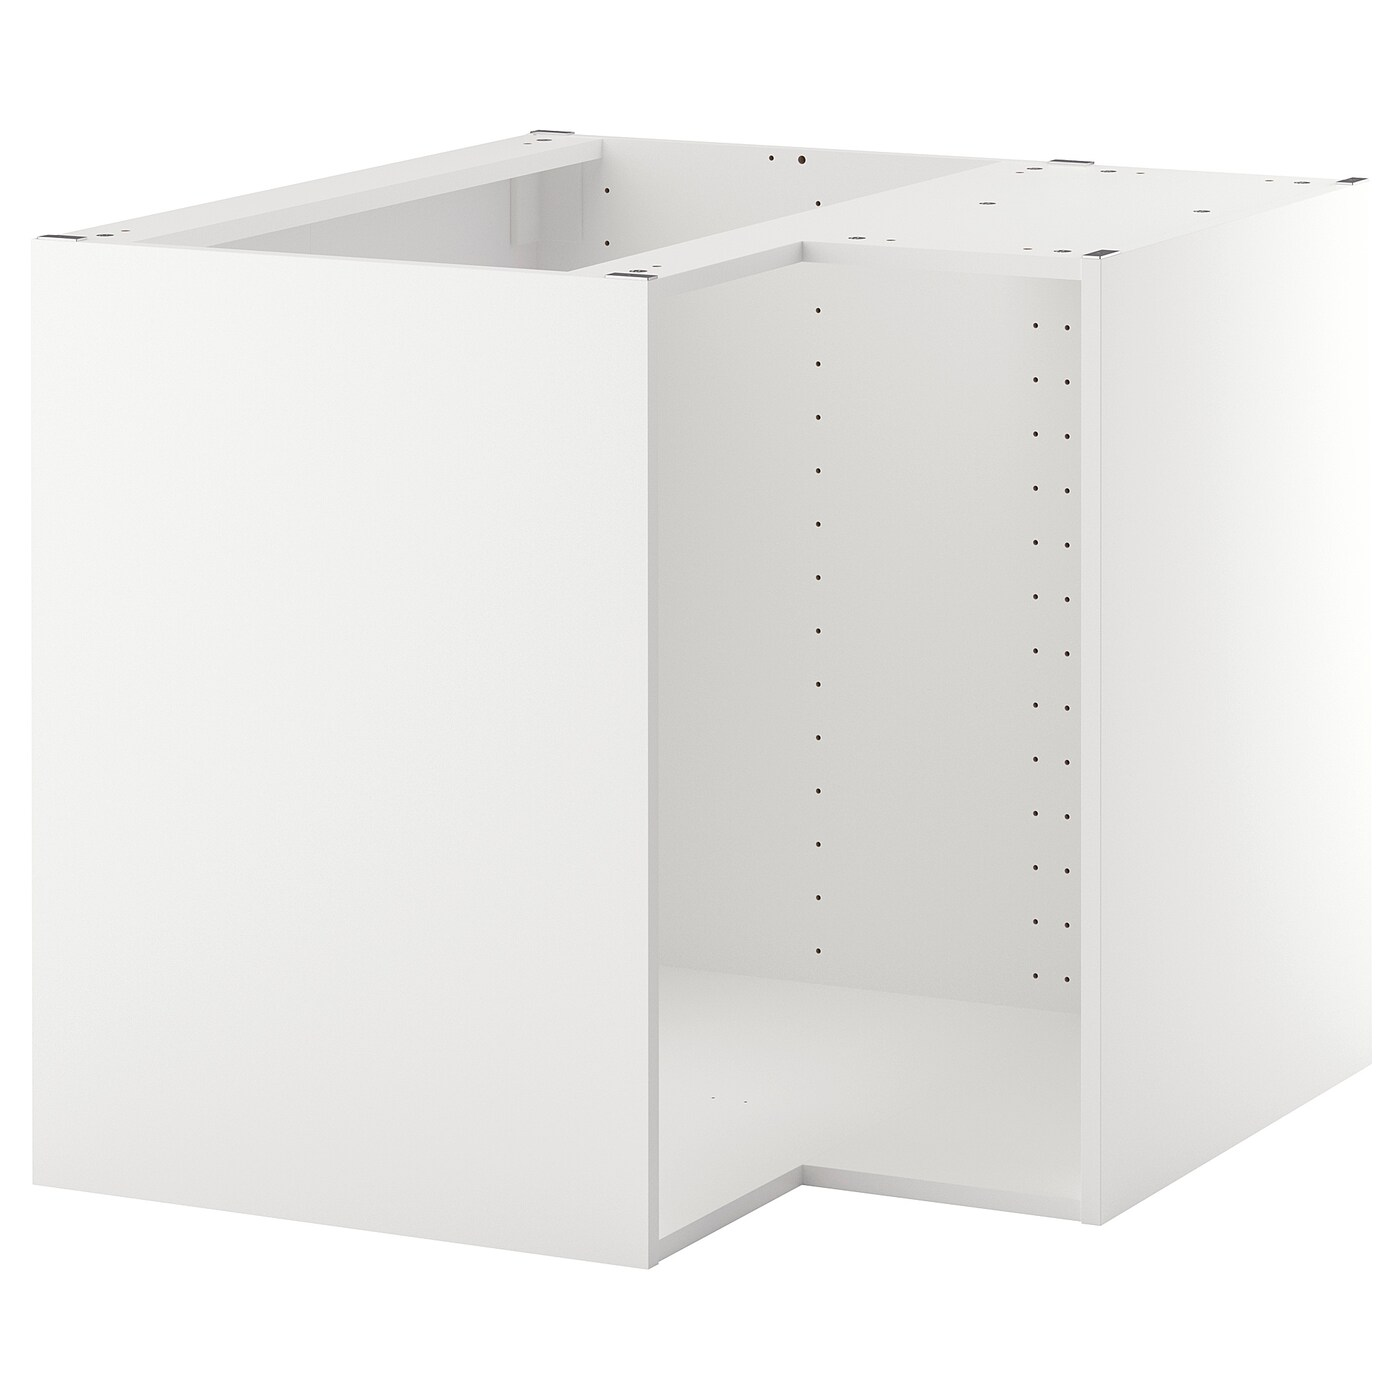 metod structure element bas d angle blanc 88x88x80 cm